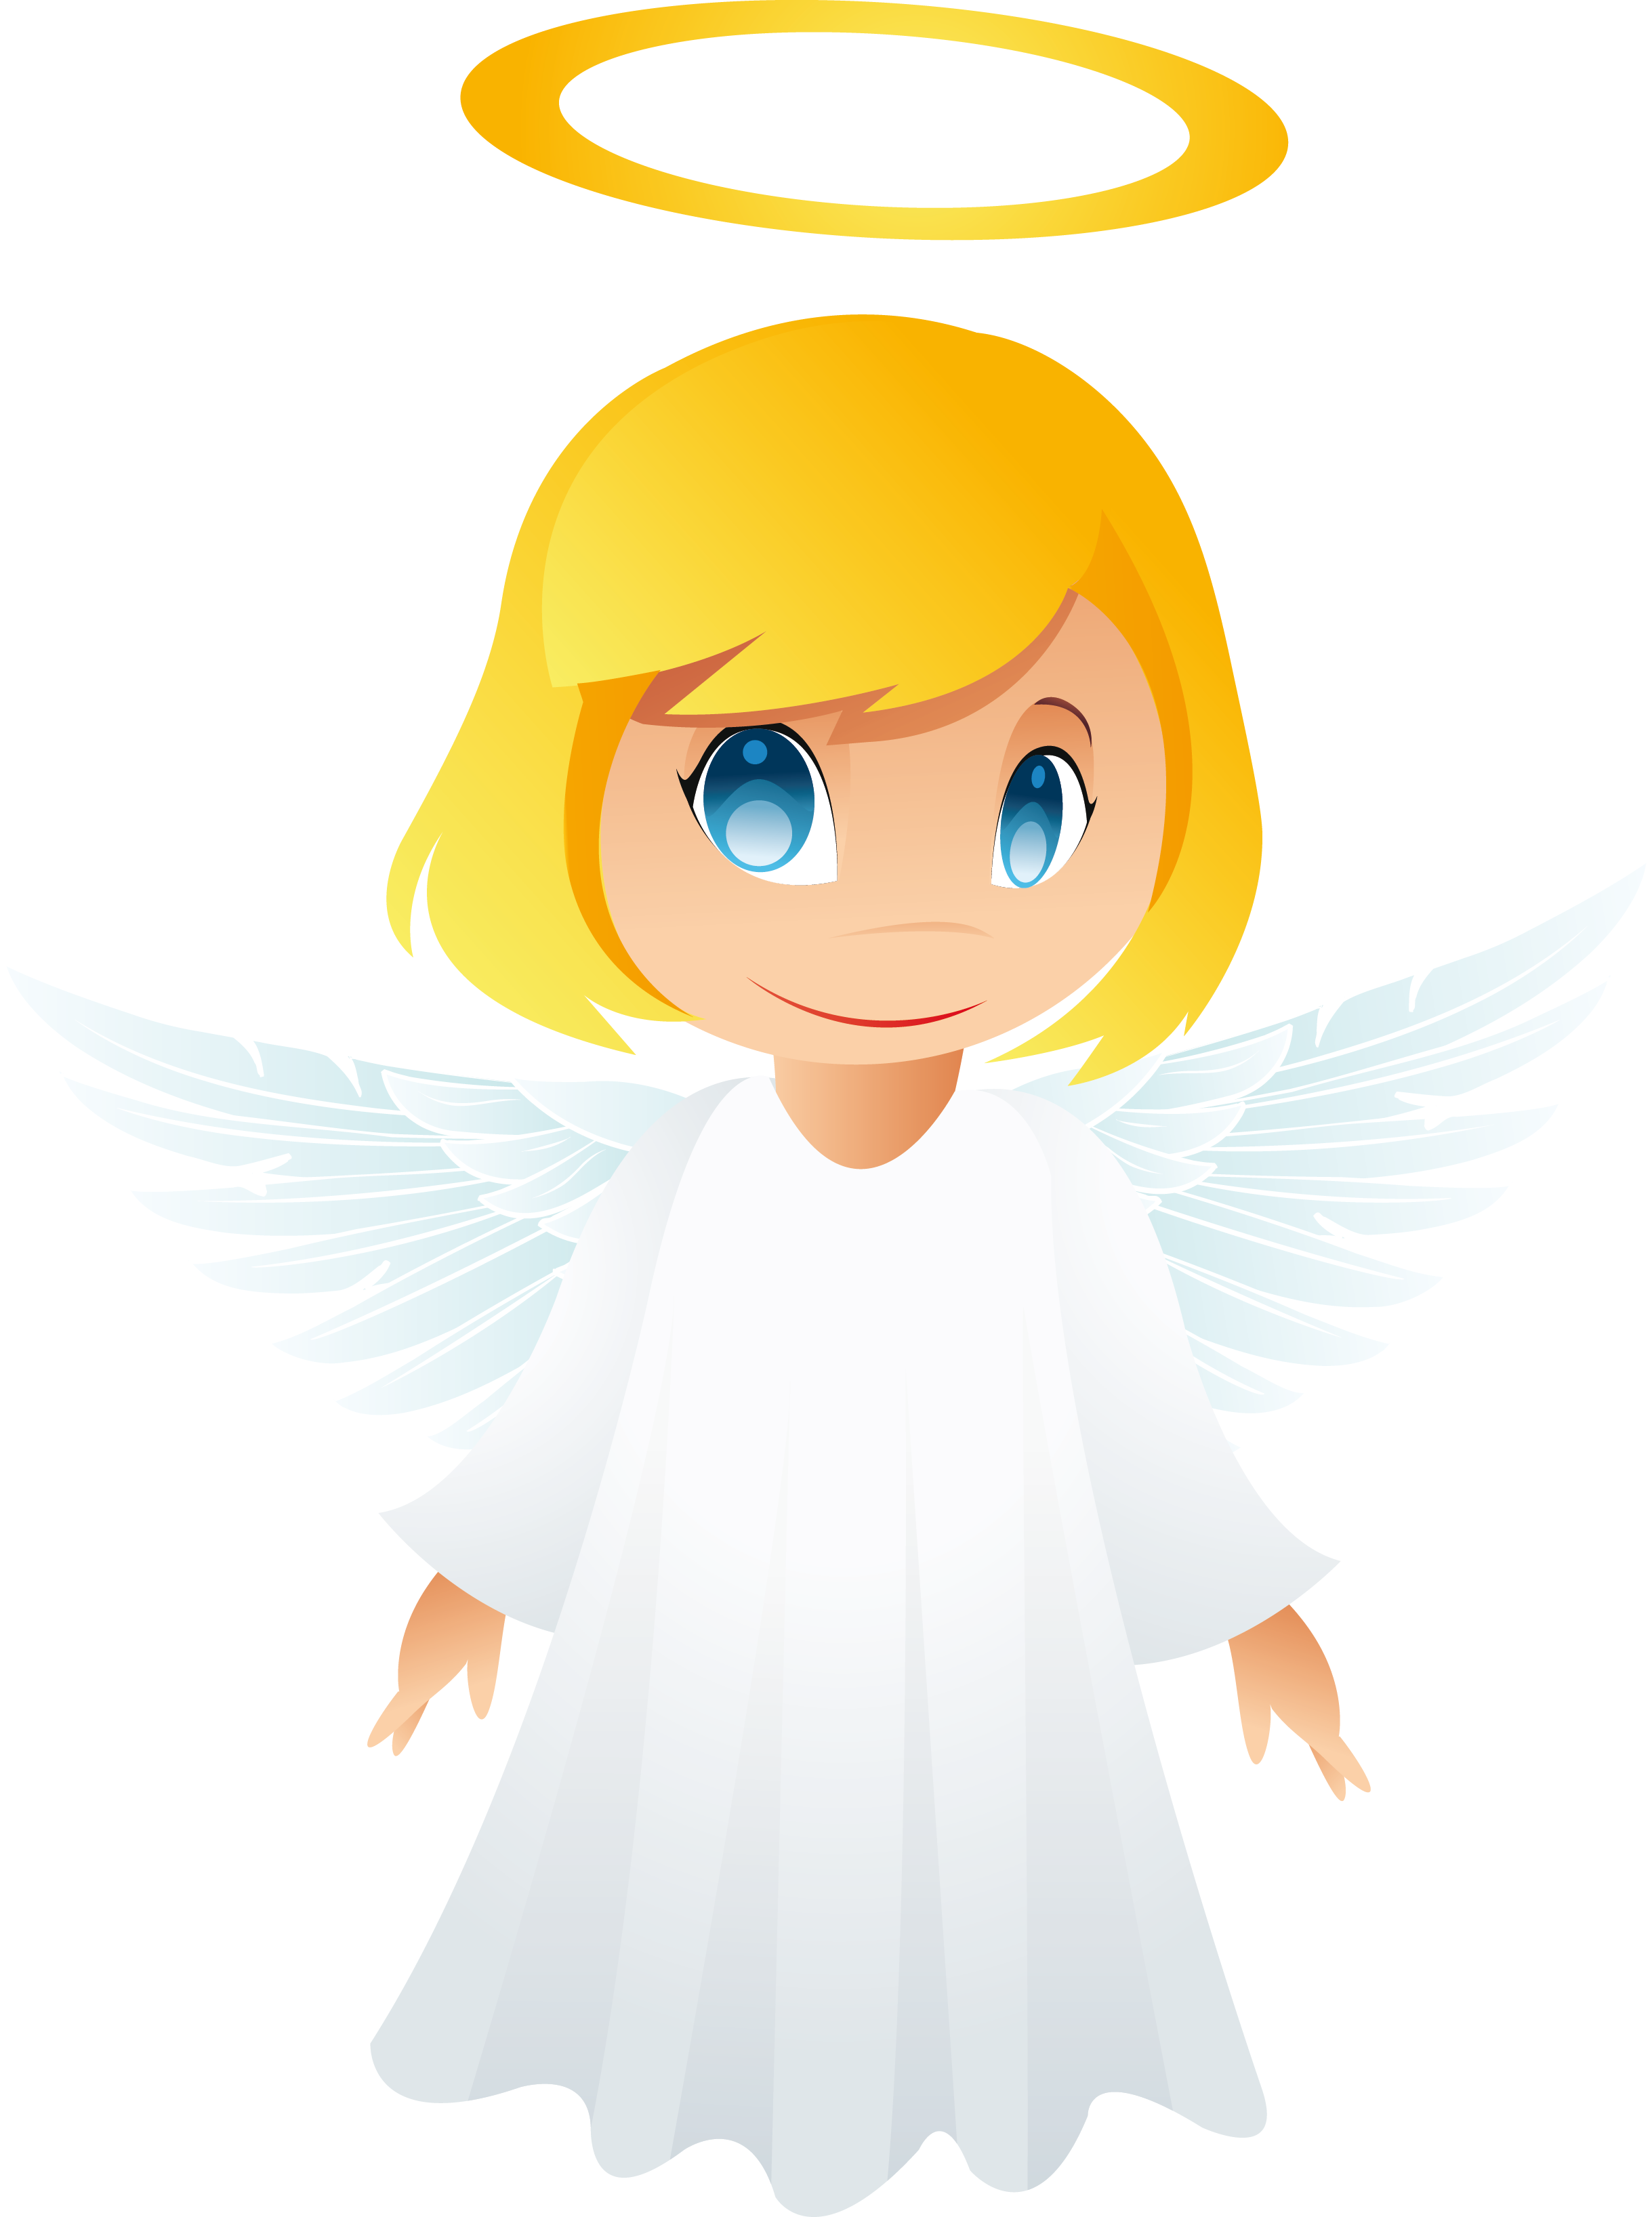 Gallery free clipart picture fruit png bananas free png cli - Angel Clipart Free Graphics Of Cherubs And Angels The Cliparts